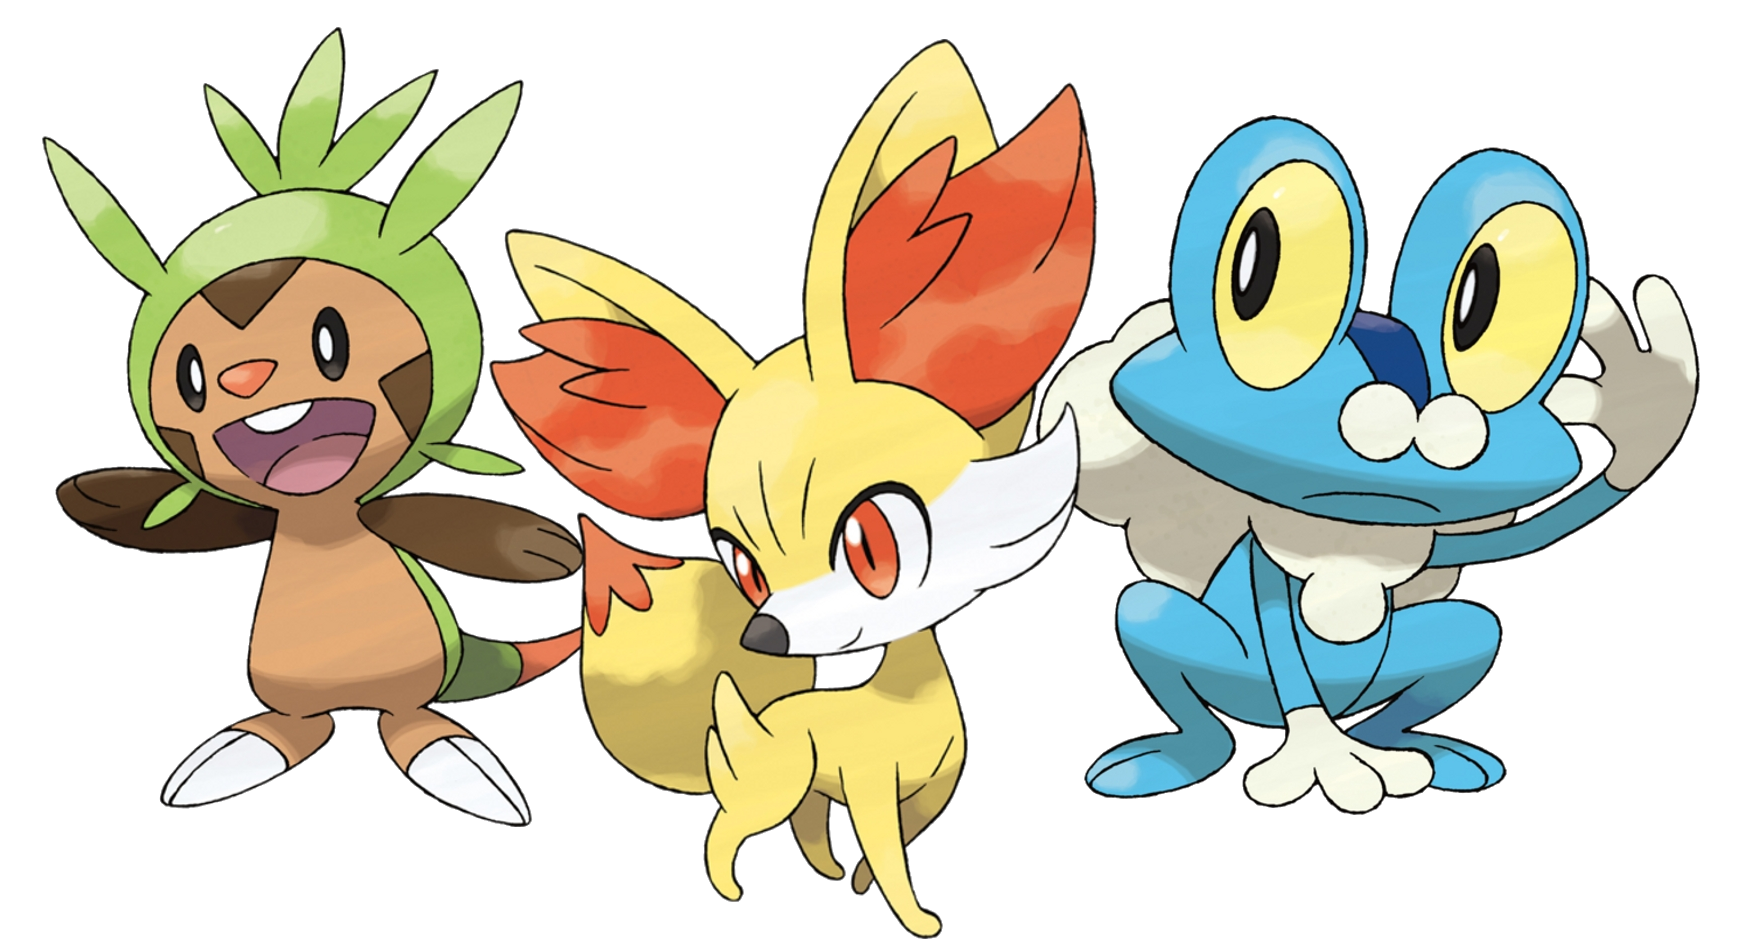 kalos starter pokémon pokémon wiki fandom powered by wikia